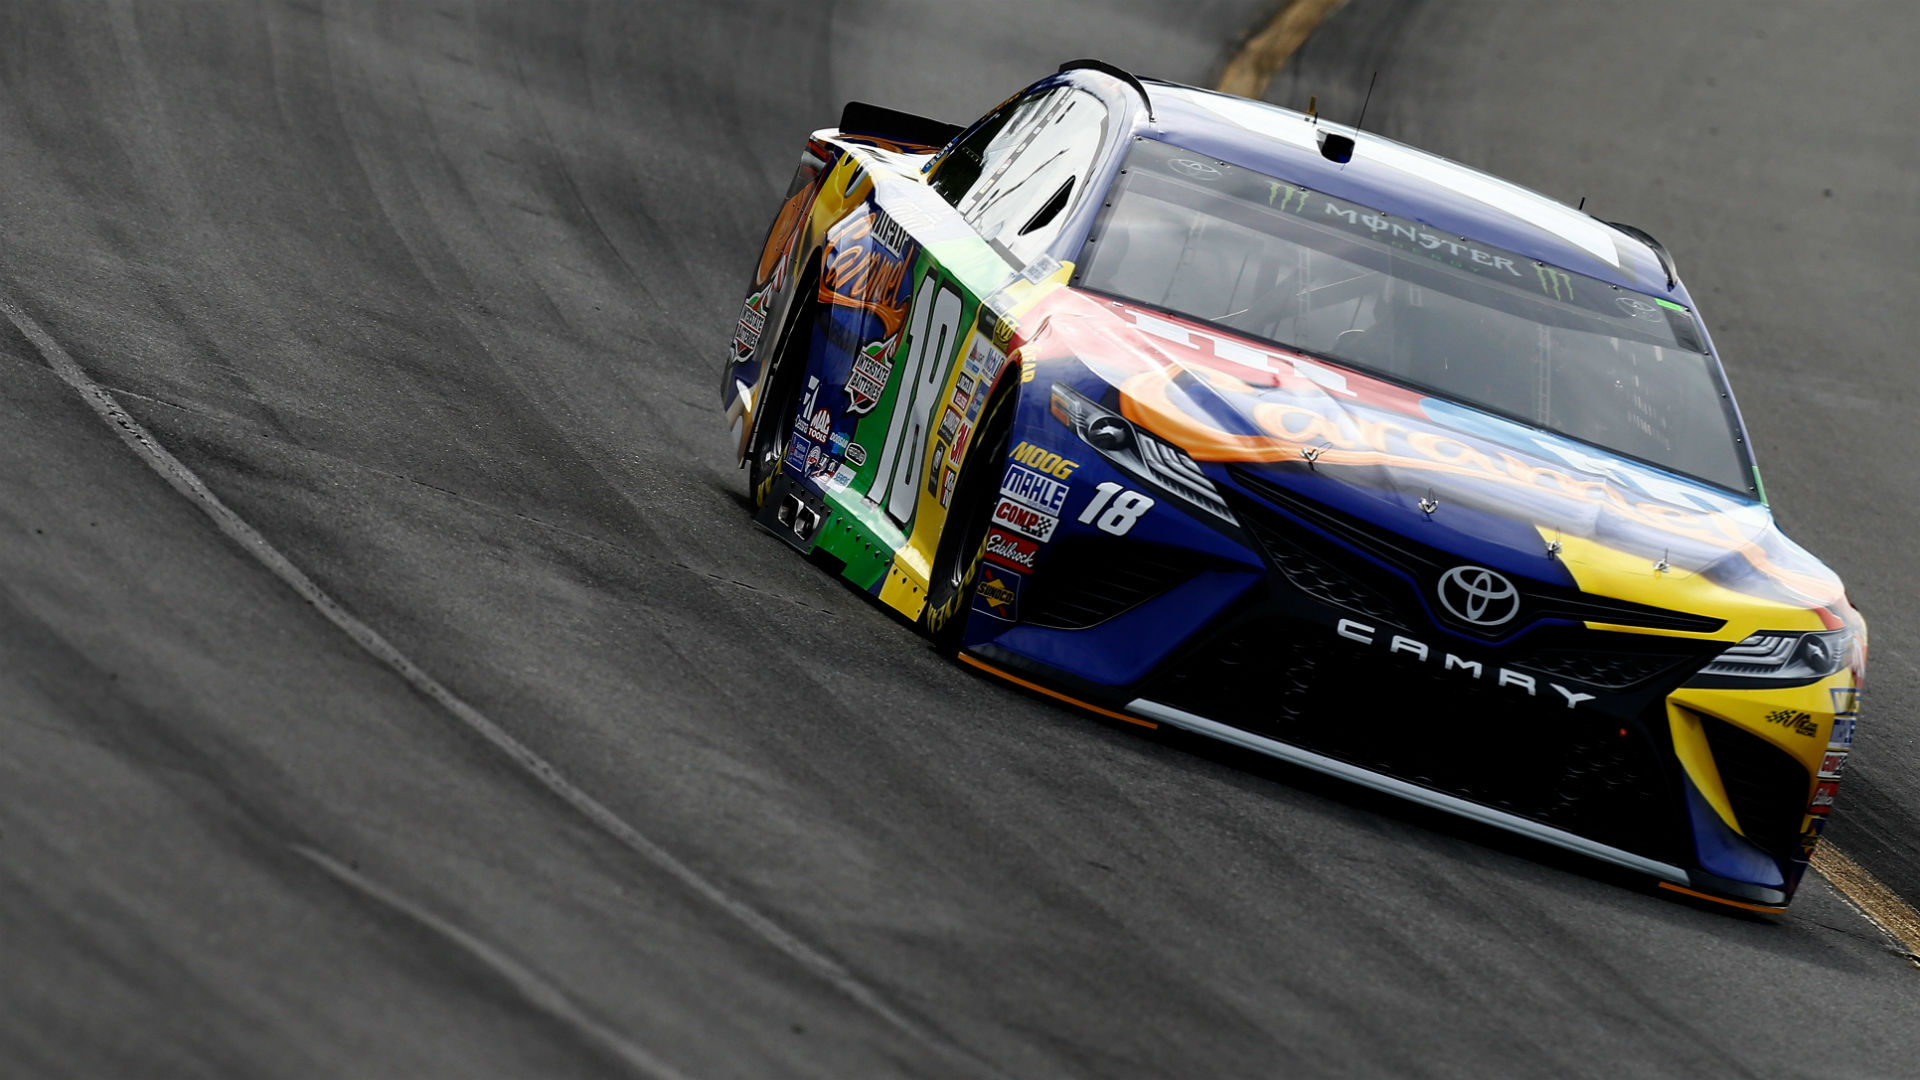 Nascar at pocono results kyle busch snaps winless streak cruises to victory at overton s 400 nascar sporting news